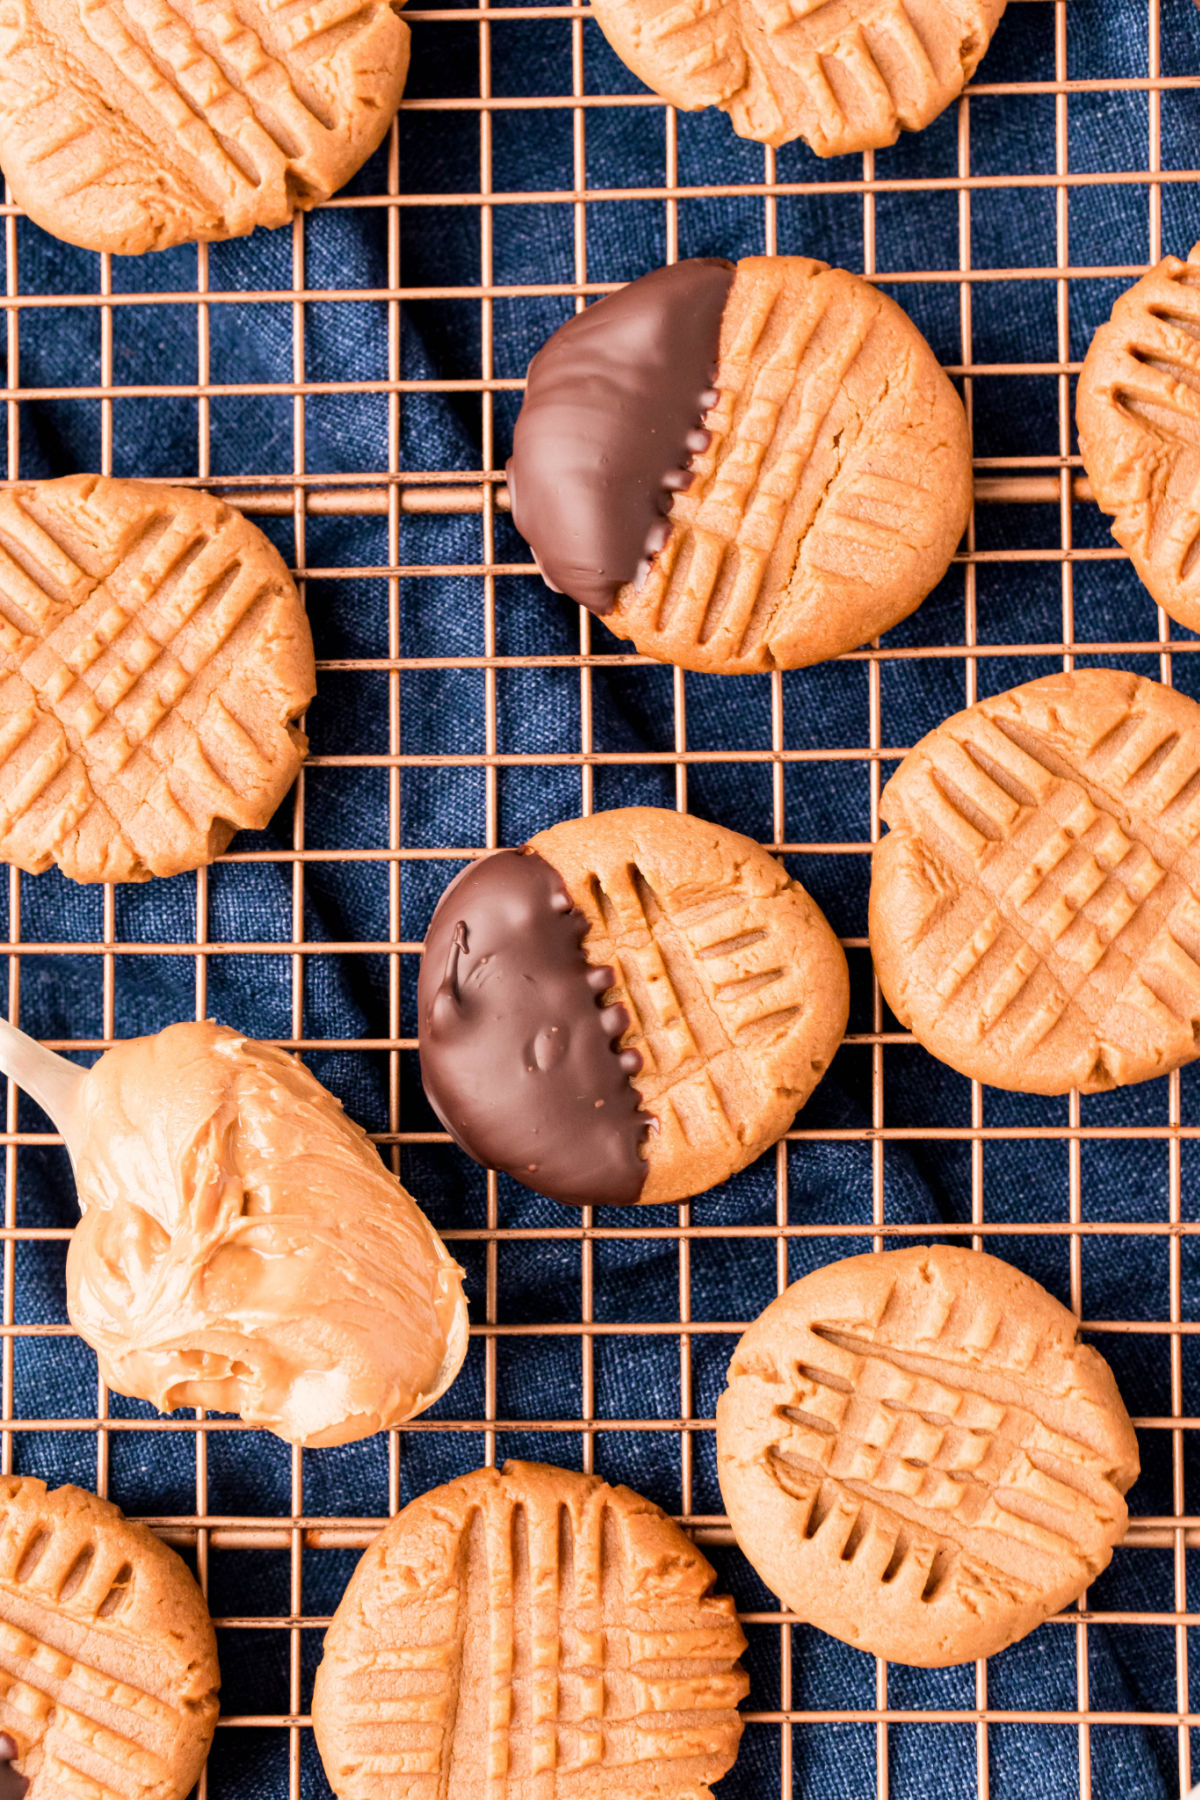 Sugar free peanut butter cookies on a wire rack, some dipped in sugar free chocolate.